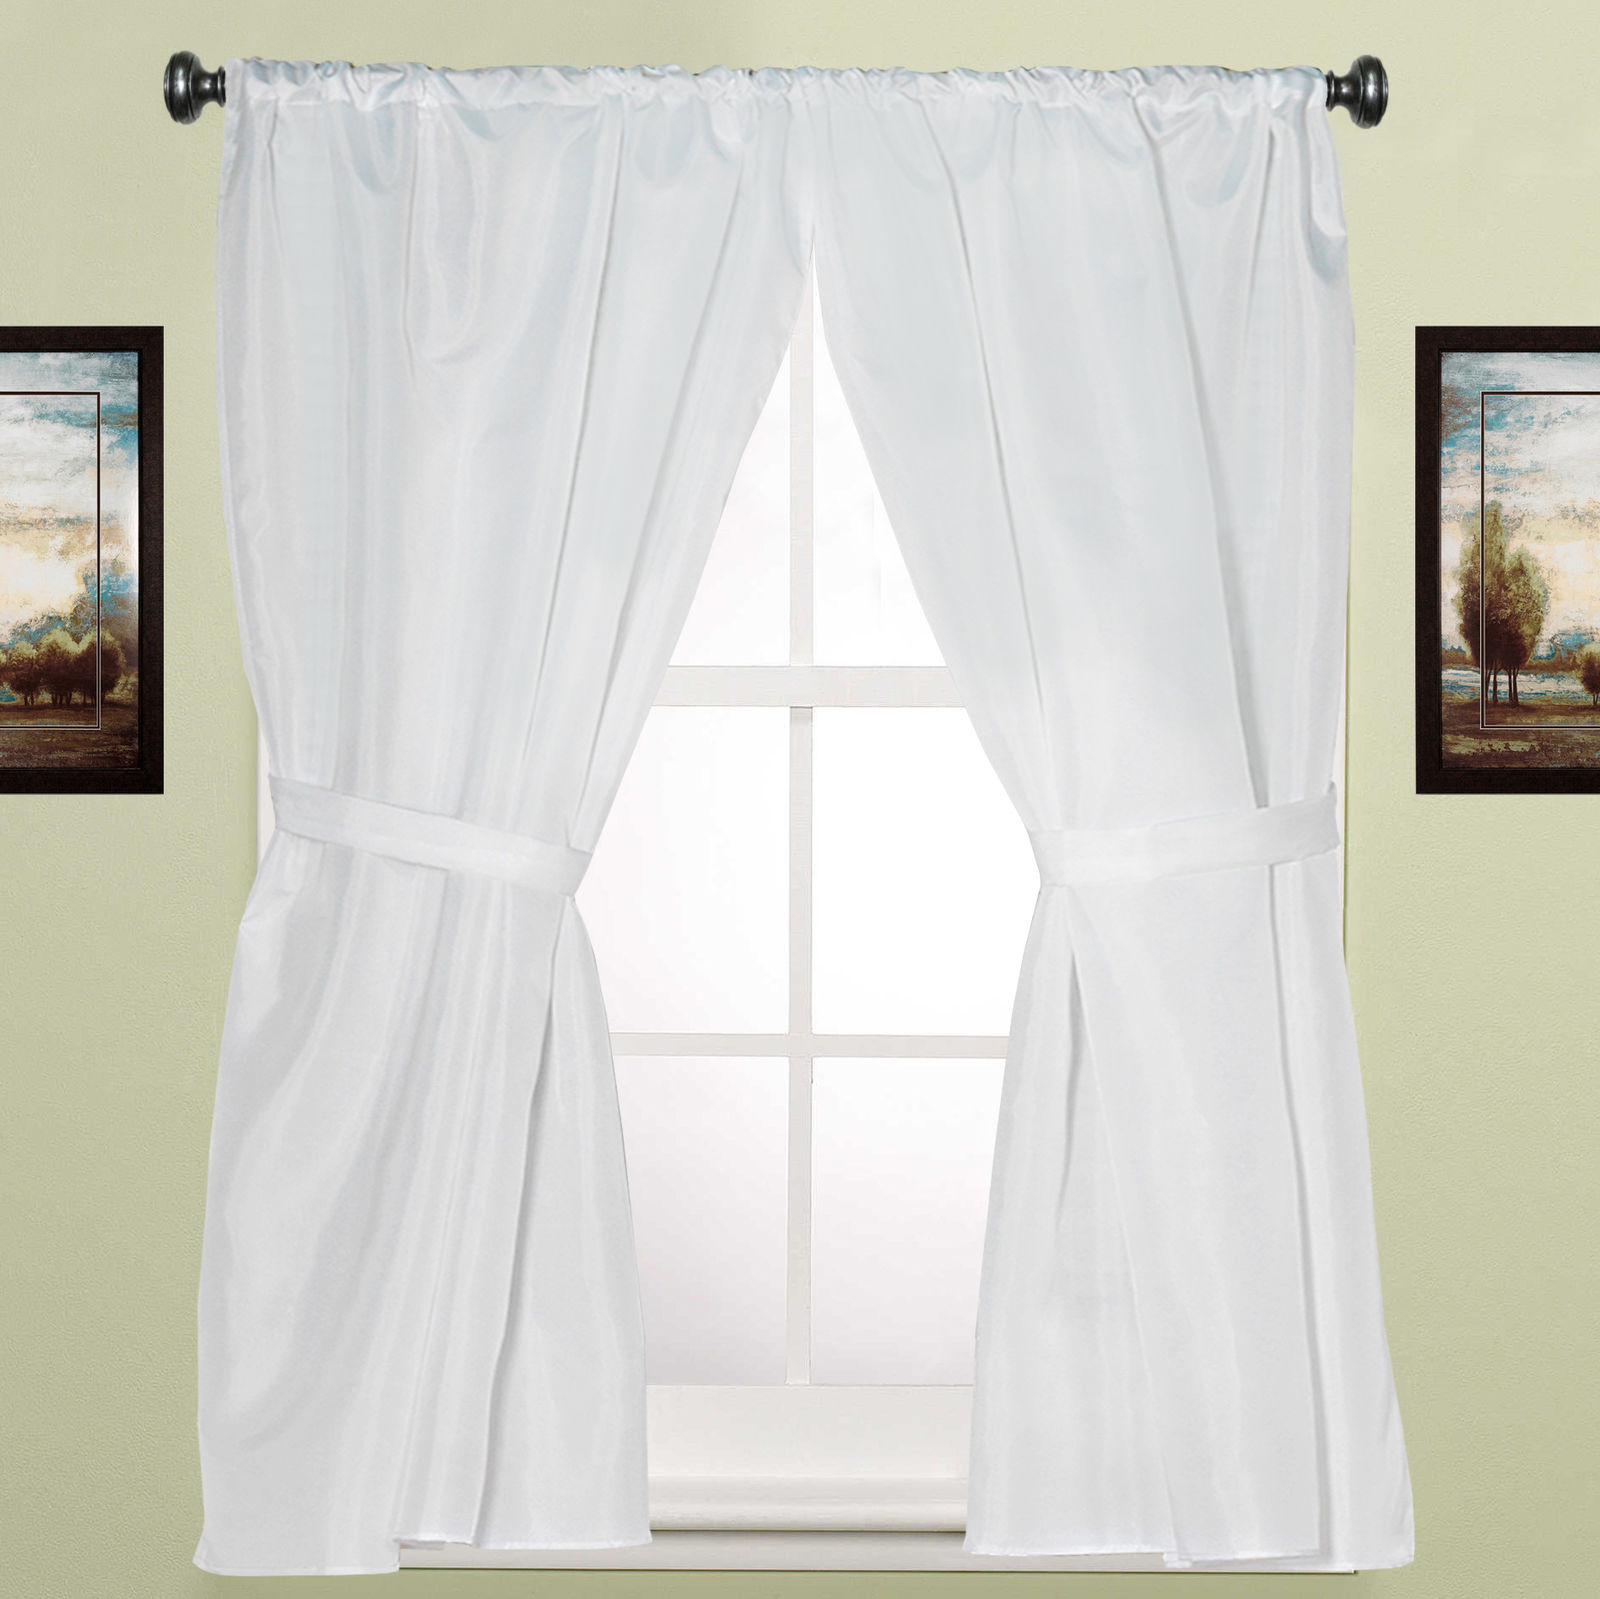 """Water Resistant White Fabric Bathroom Window Curtain Pair W/ Tiebacks 36"""" X 54"""" For Classic Hotel Quality Water Resistant Fabric Curtains Set With Tiebacks (View 20 of 20)"""